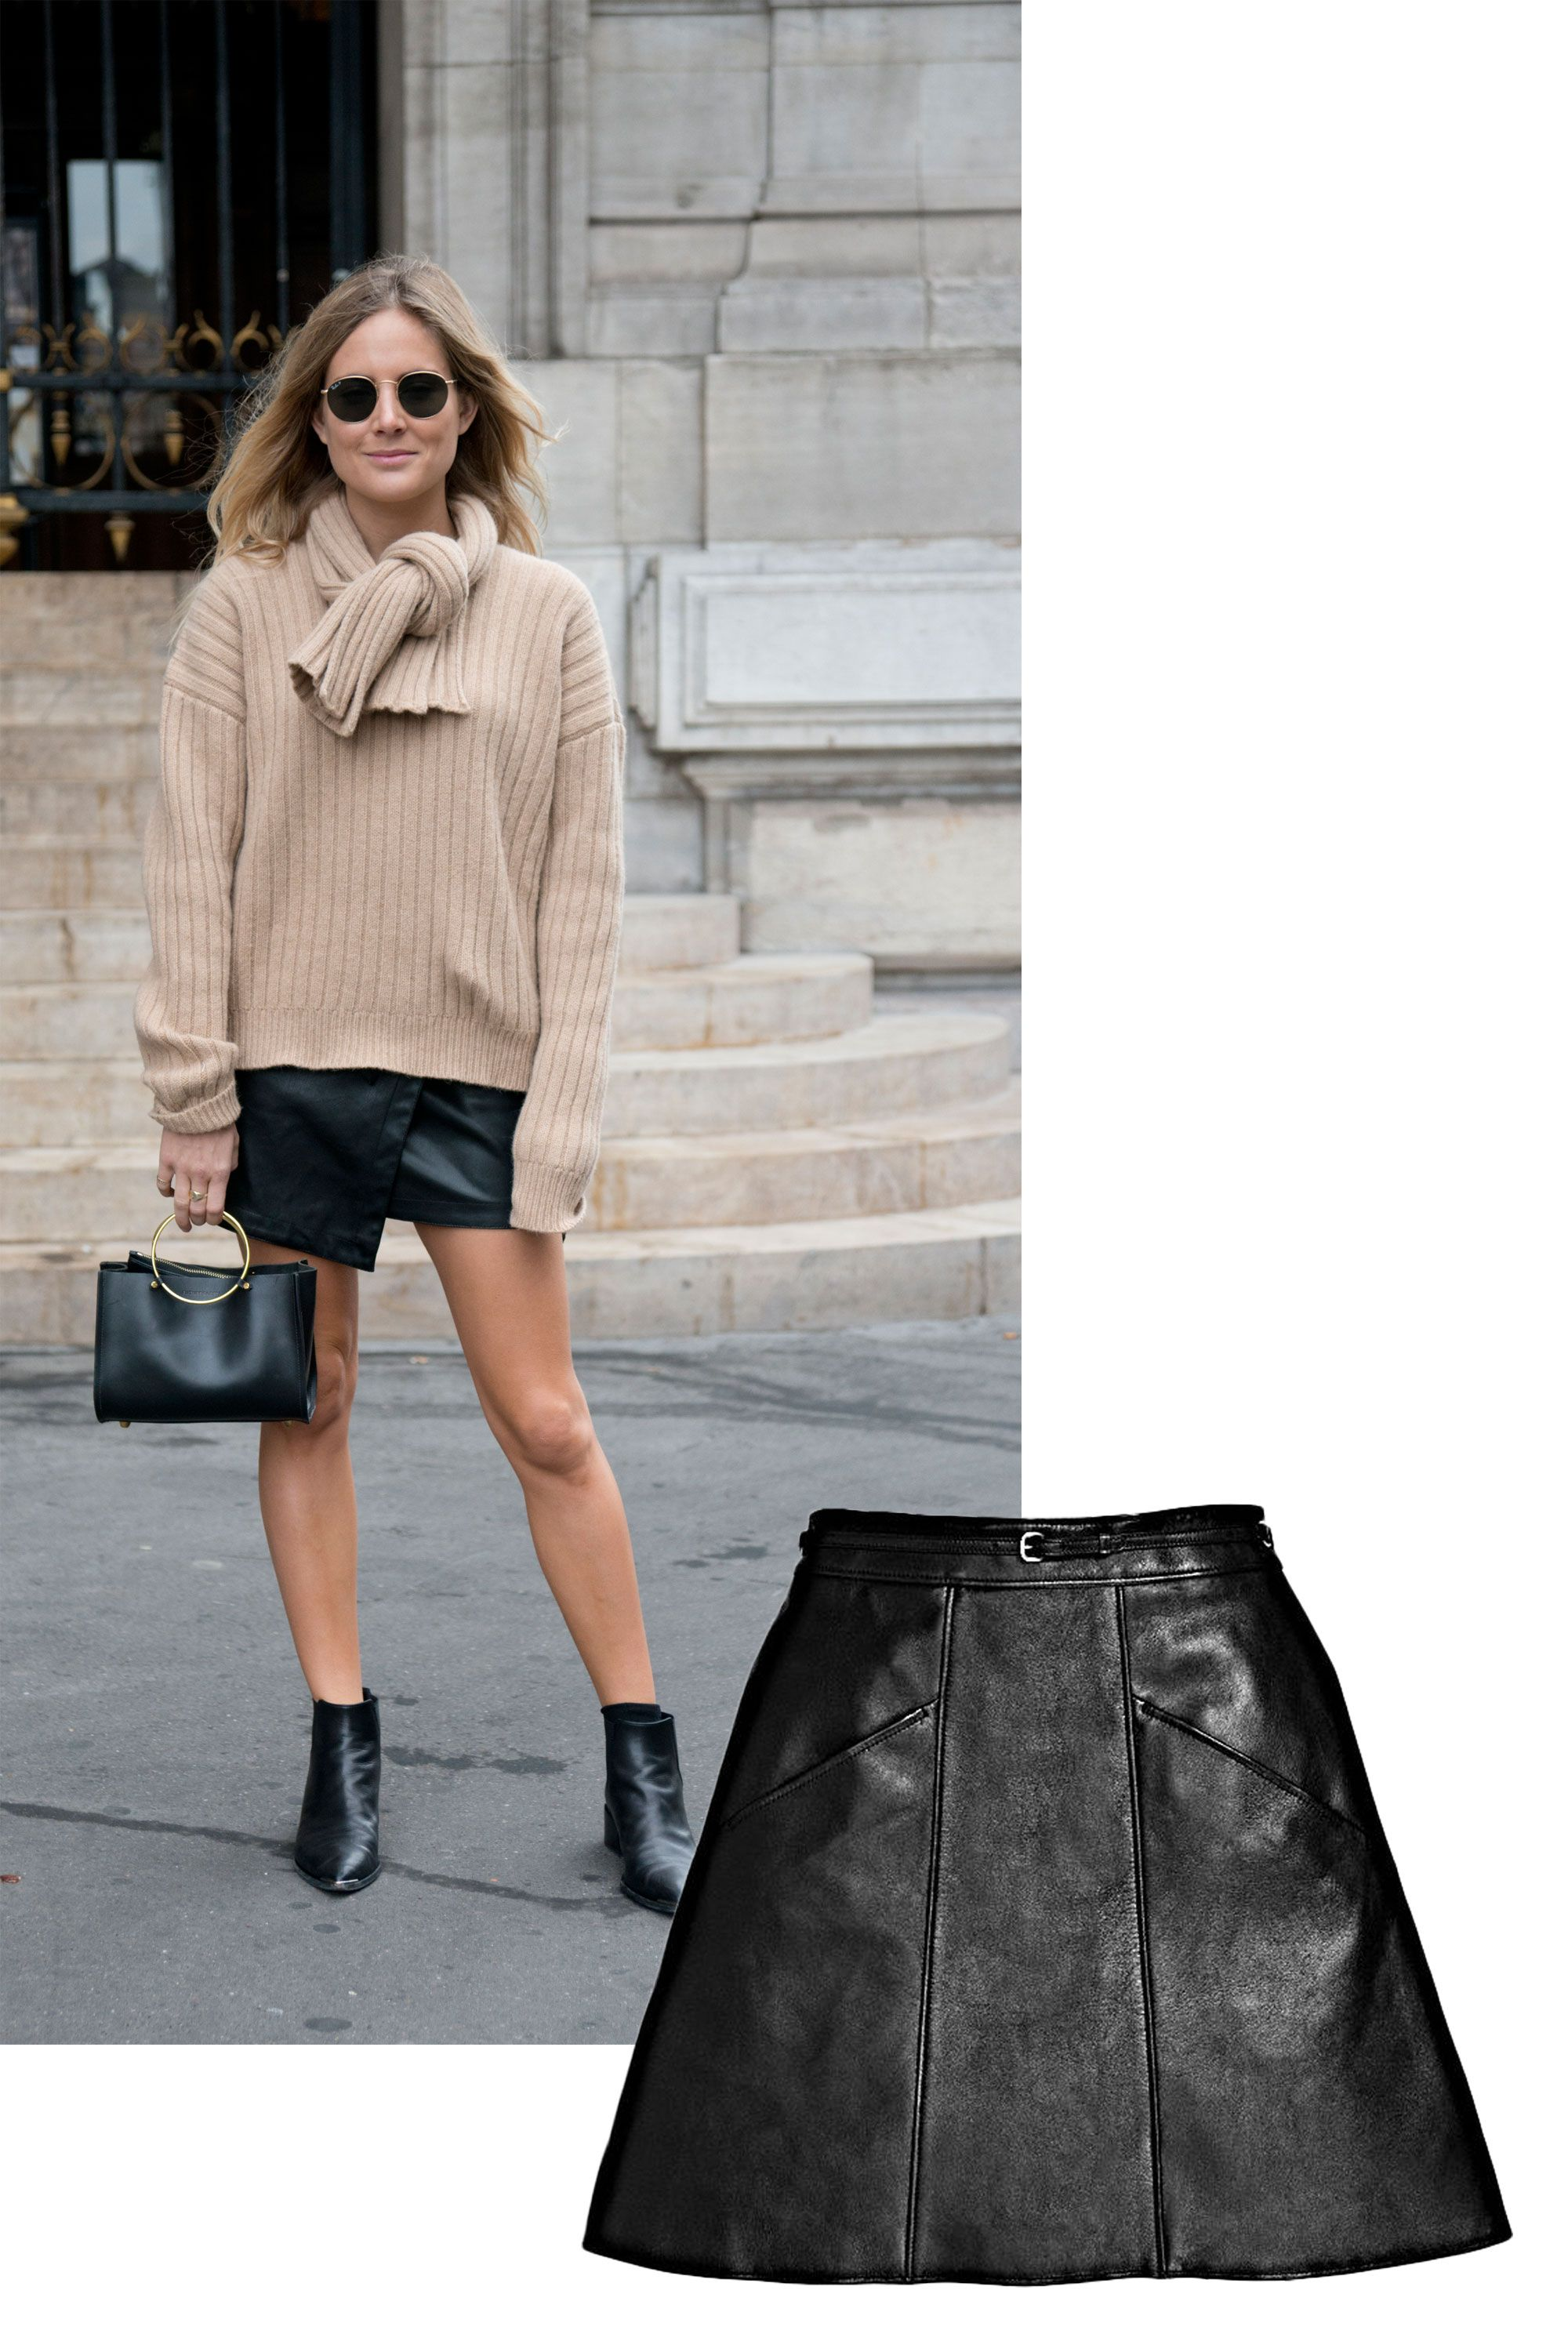 "<p>Crisp weather signifies that it's time to move summer's lightweight dresses and fabrics to the back of the closet. Retire silks and cotton, but not the silhouettes: Most work in forever-cool leather, including this snappy A-line skirt.</p><p><em data-redactor-tag=""em"">Coach 1941 Leather A-Line Skirt, $695, </em><a rel=""noskim"" href=""http://www.coach.com/coach-designer-pants-leather-a-line-skirt/56692.html?CID=D_B_ELL_11593"" target=""_blank""><em data-redactor-tag=""em"">coach.com</em></a></p>"